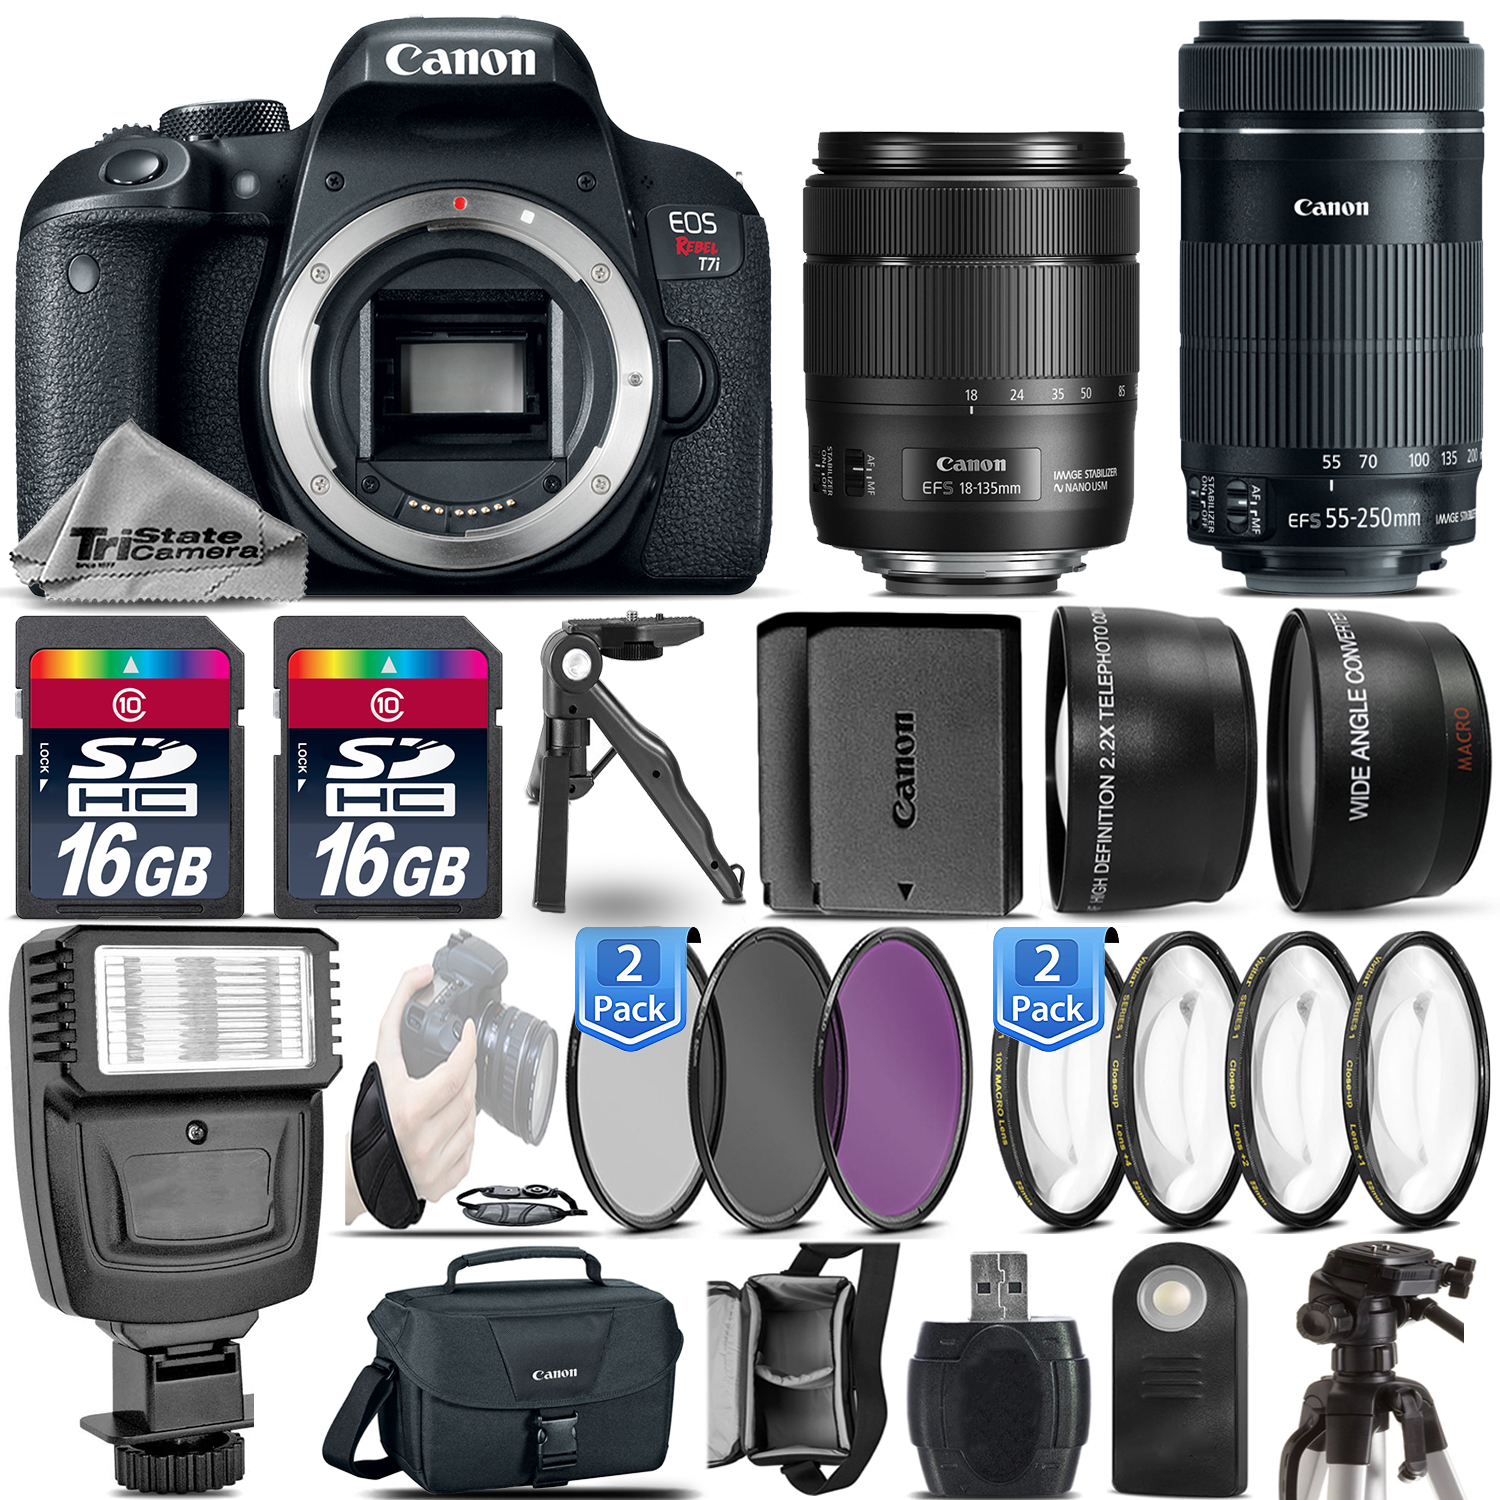 EOS Rebel T7i DSLR Camera + 18-135mm USM + 55-250mm IS + EXT BAT -32GB Kit *FREE SHIPPING*